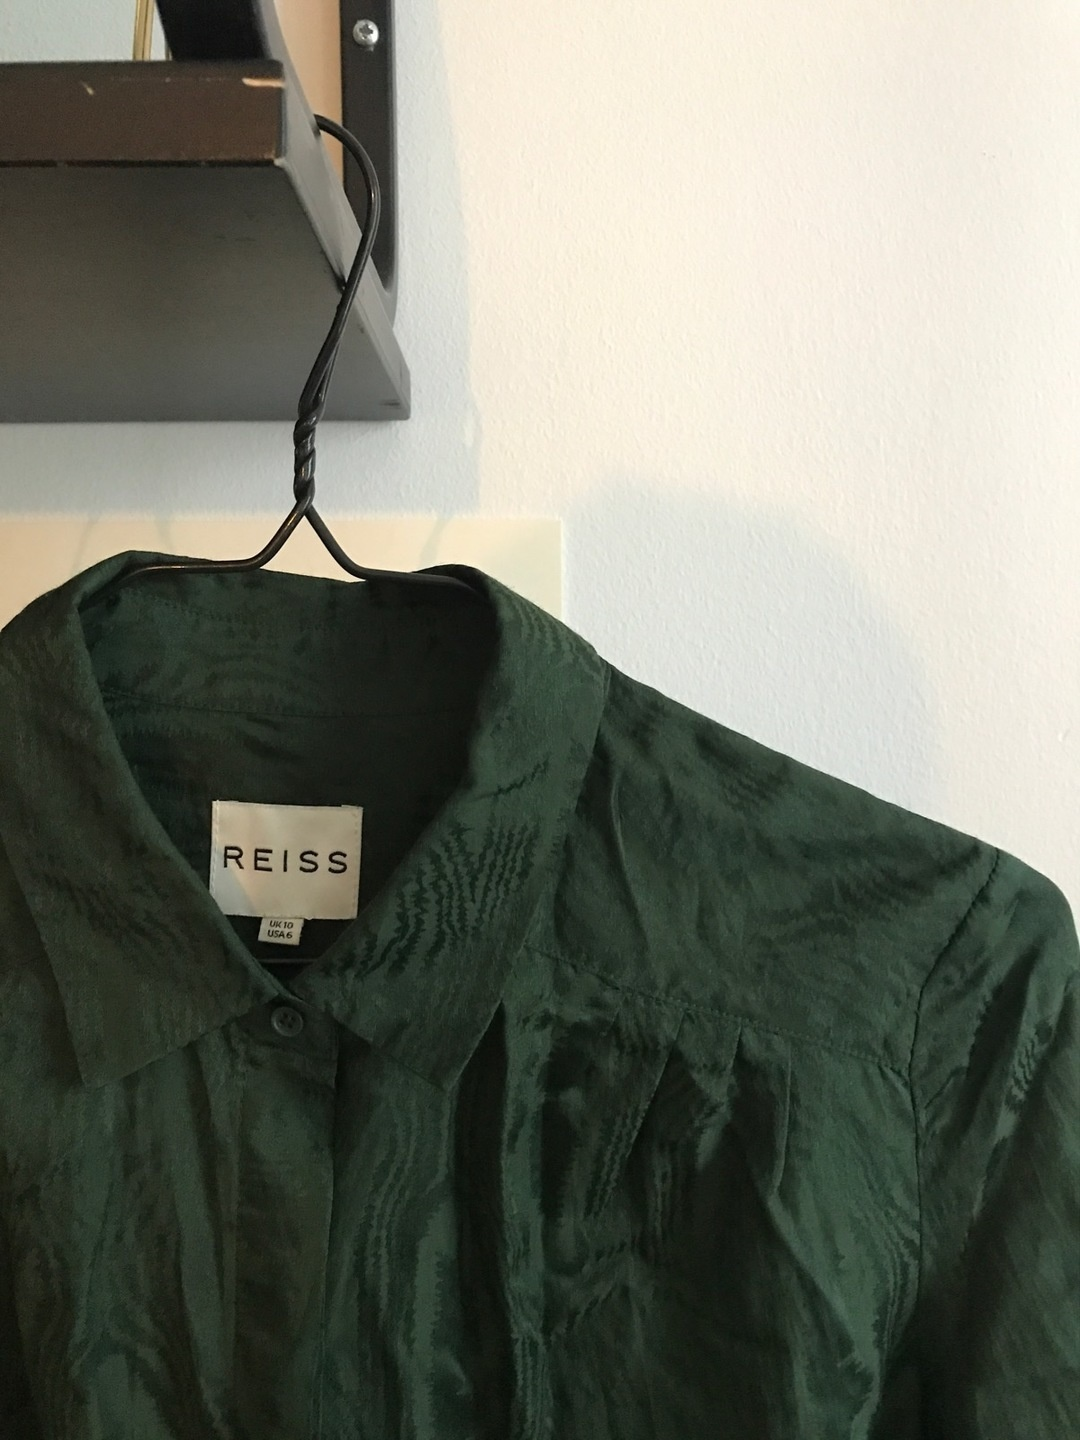 Women's blouses & shirts - REISS photo 2